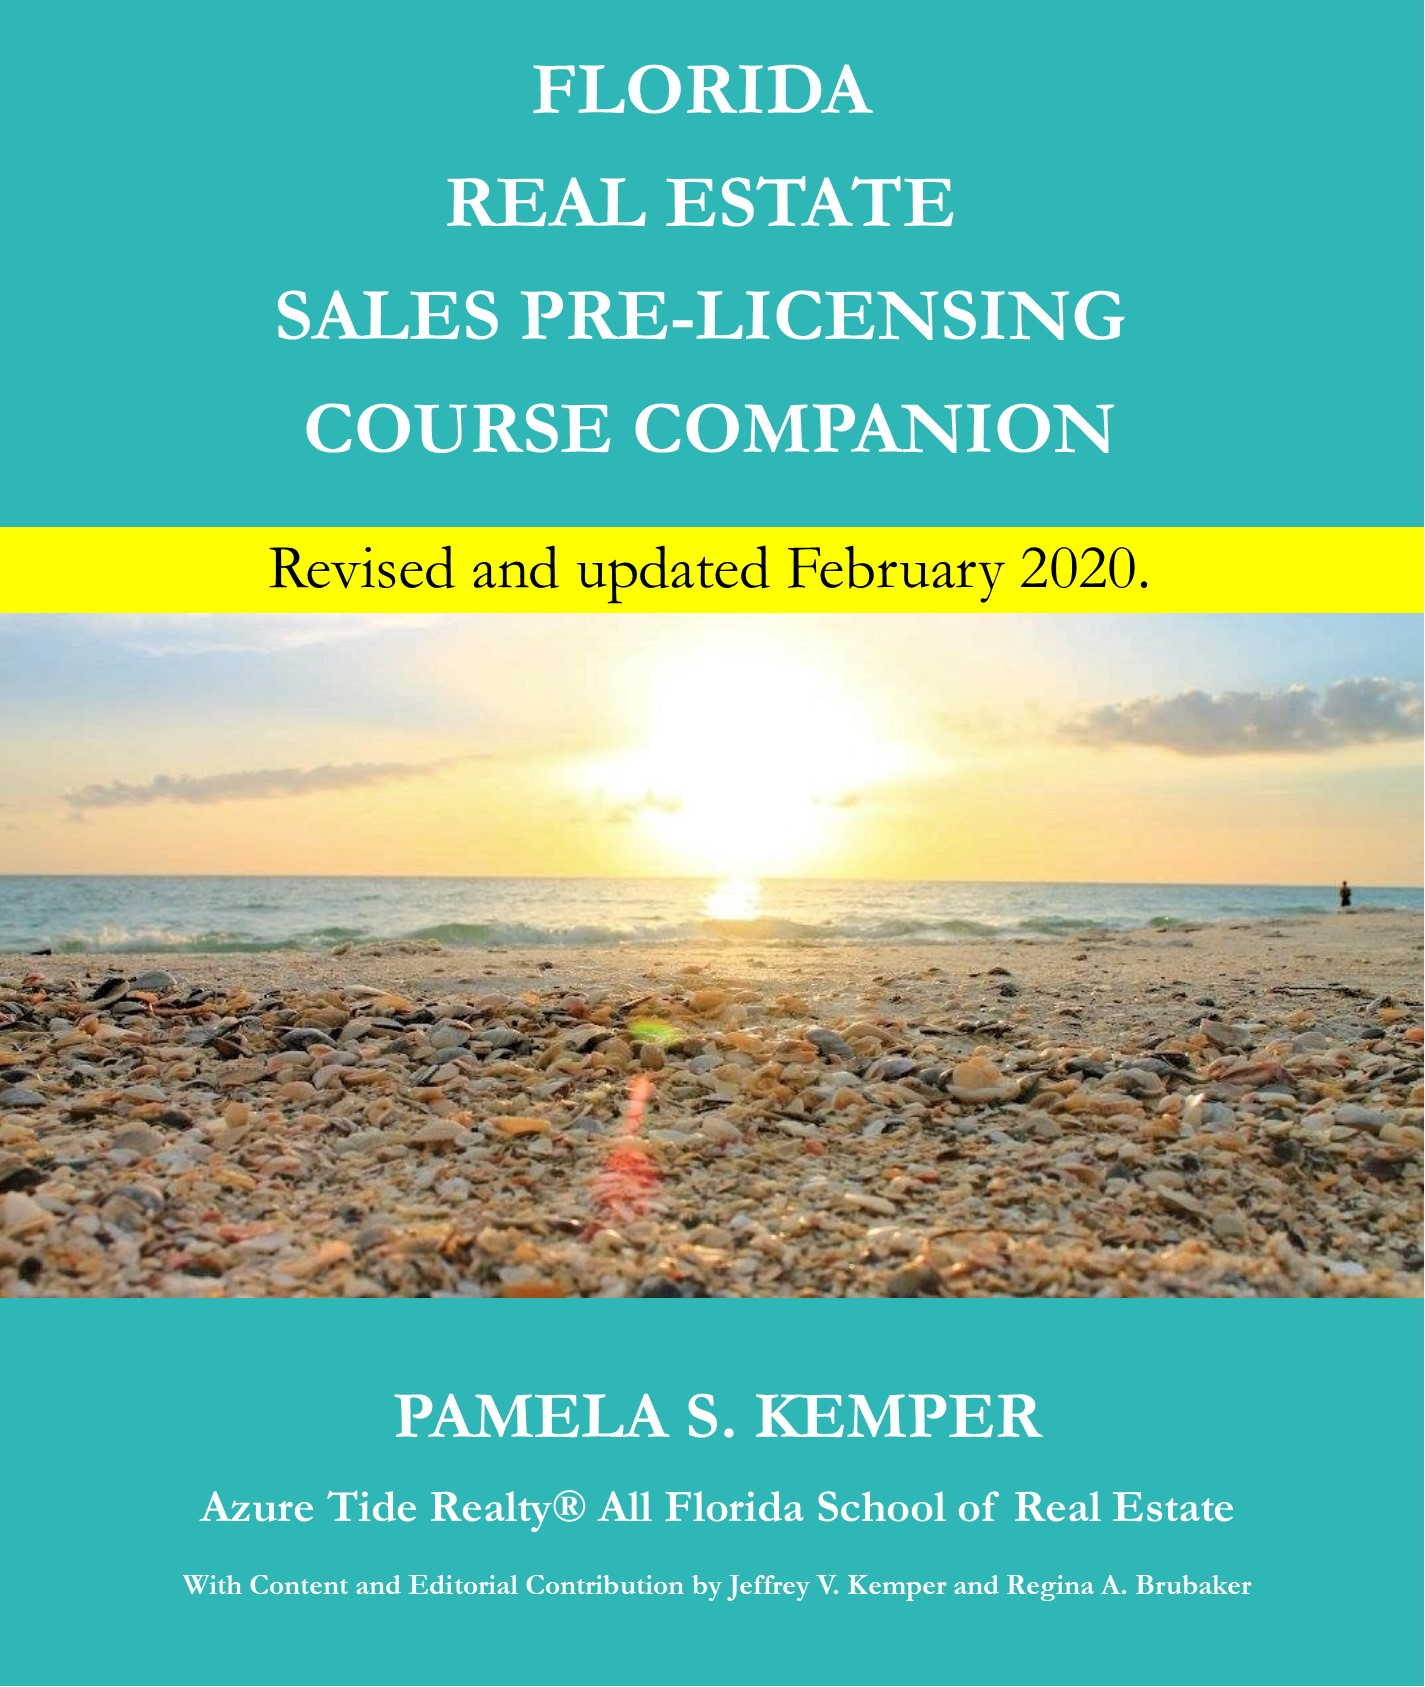 Course Companion CoverNewCover E book